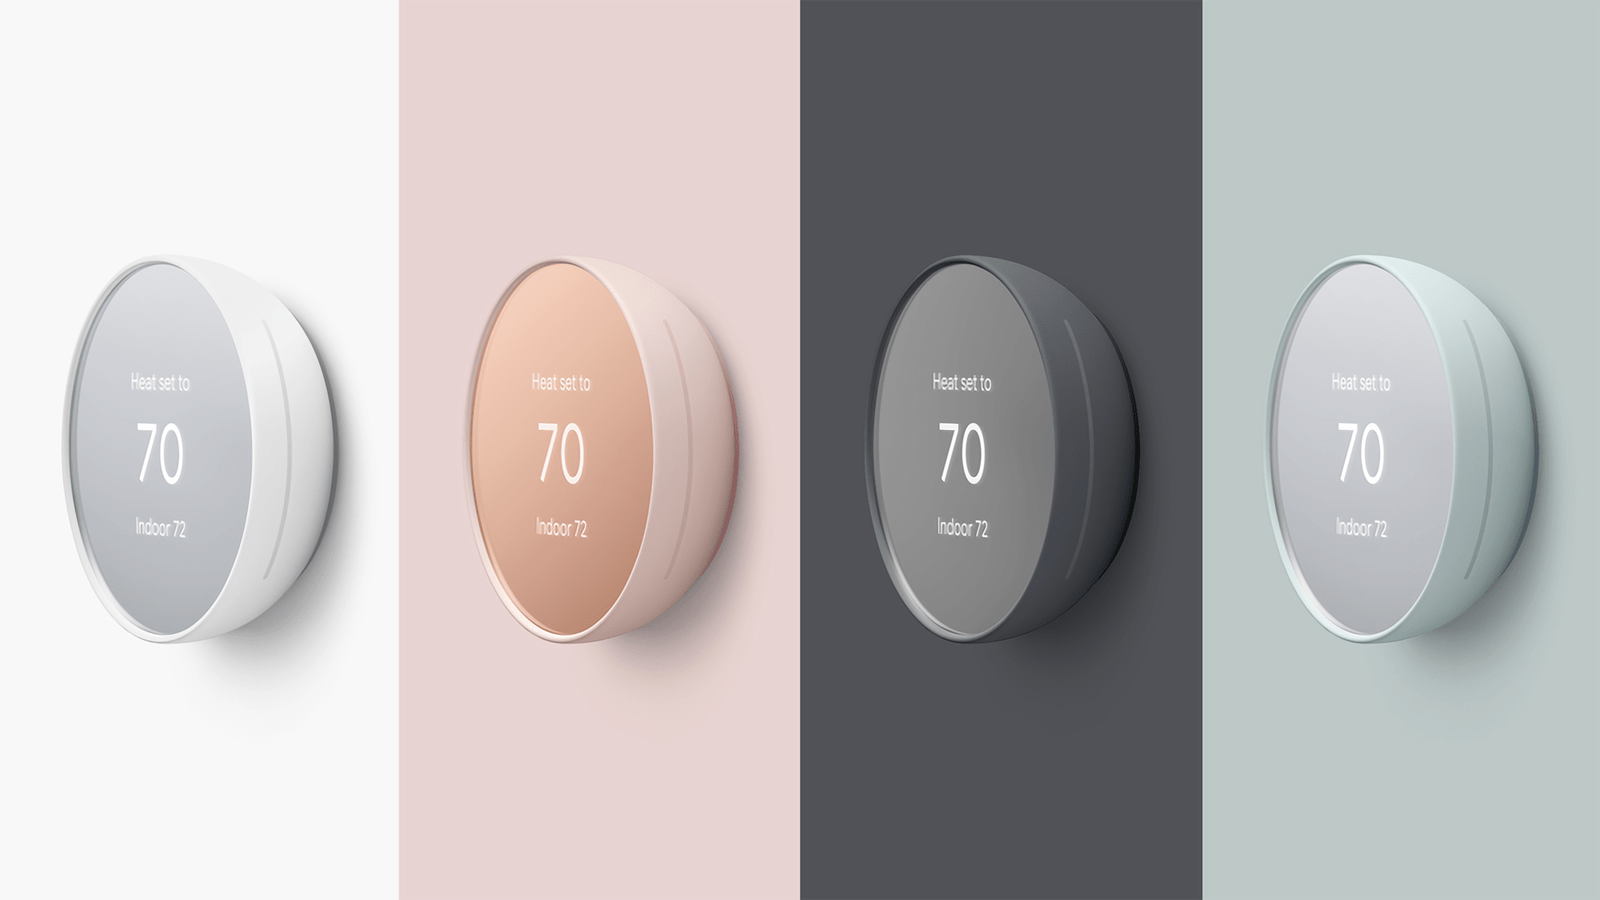 Google's refined Nest Thermostat features a simpler design, lower price